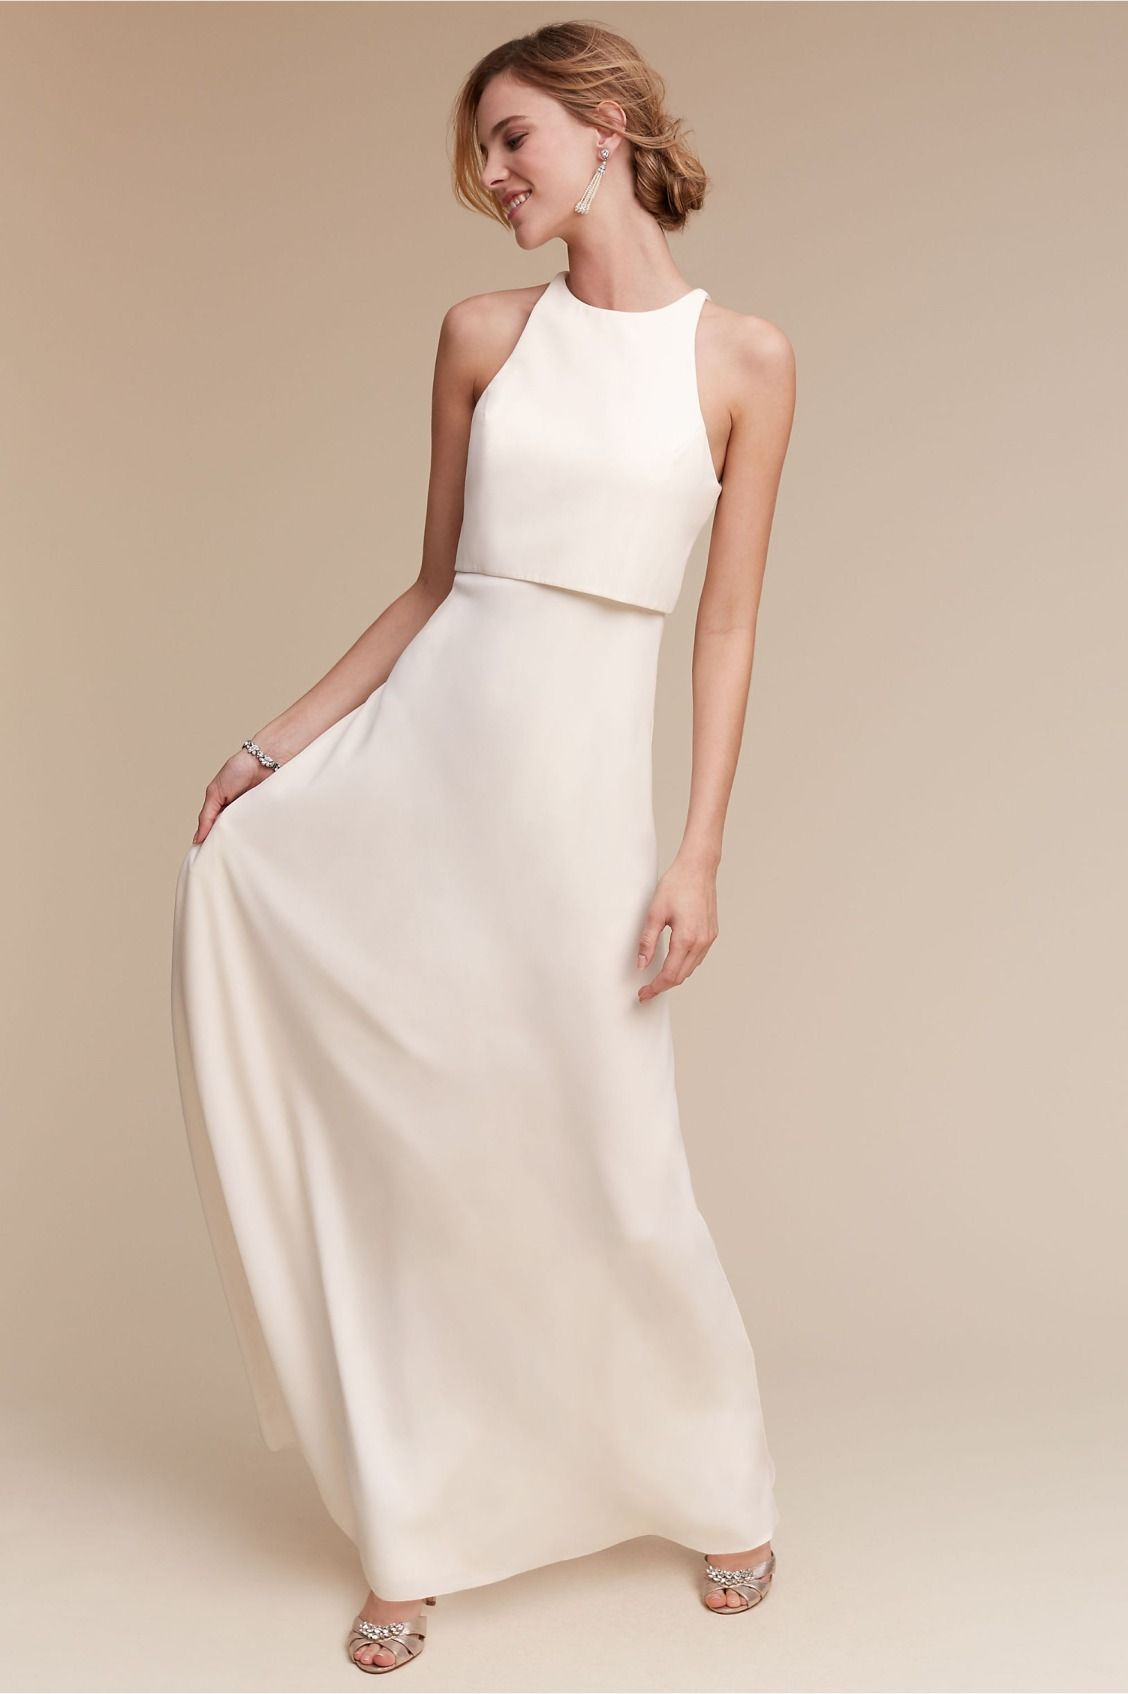 Minimal crepe bridesmaid dress iva crepe maxi dress from bhldn t